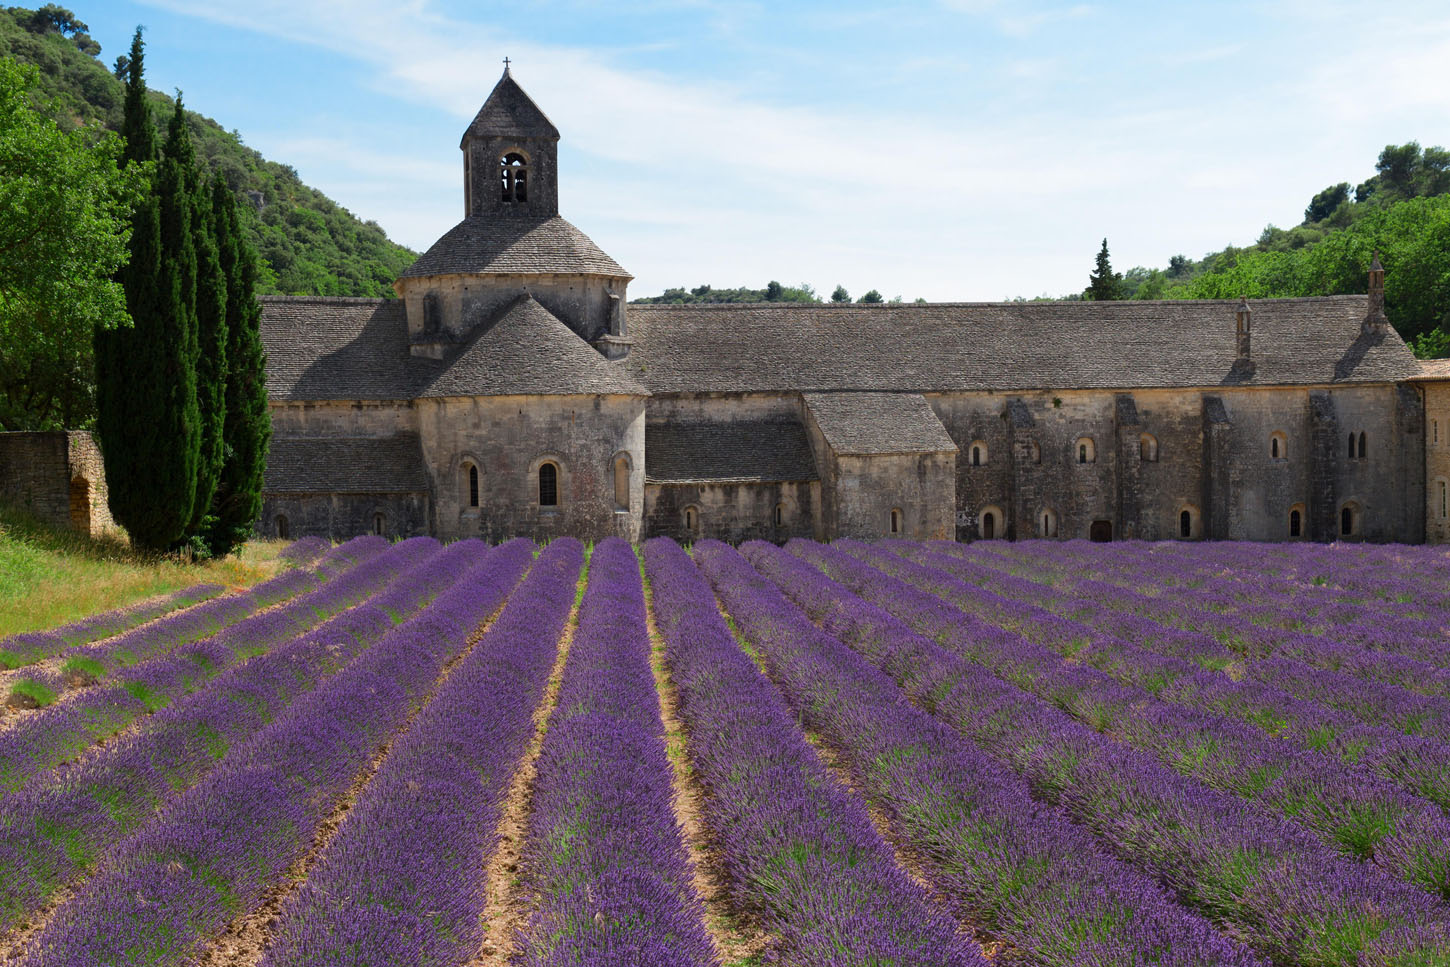 Abbey Senanque building and blooming Lavender field, France, Image: 321729113, License: Royalty-free, Restrictions: , Model Release: no, Credit line: Profimedia, Alamy